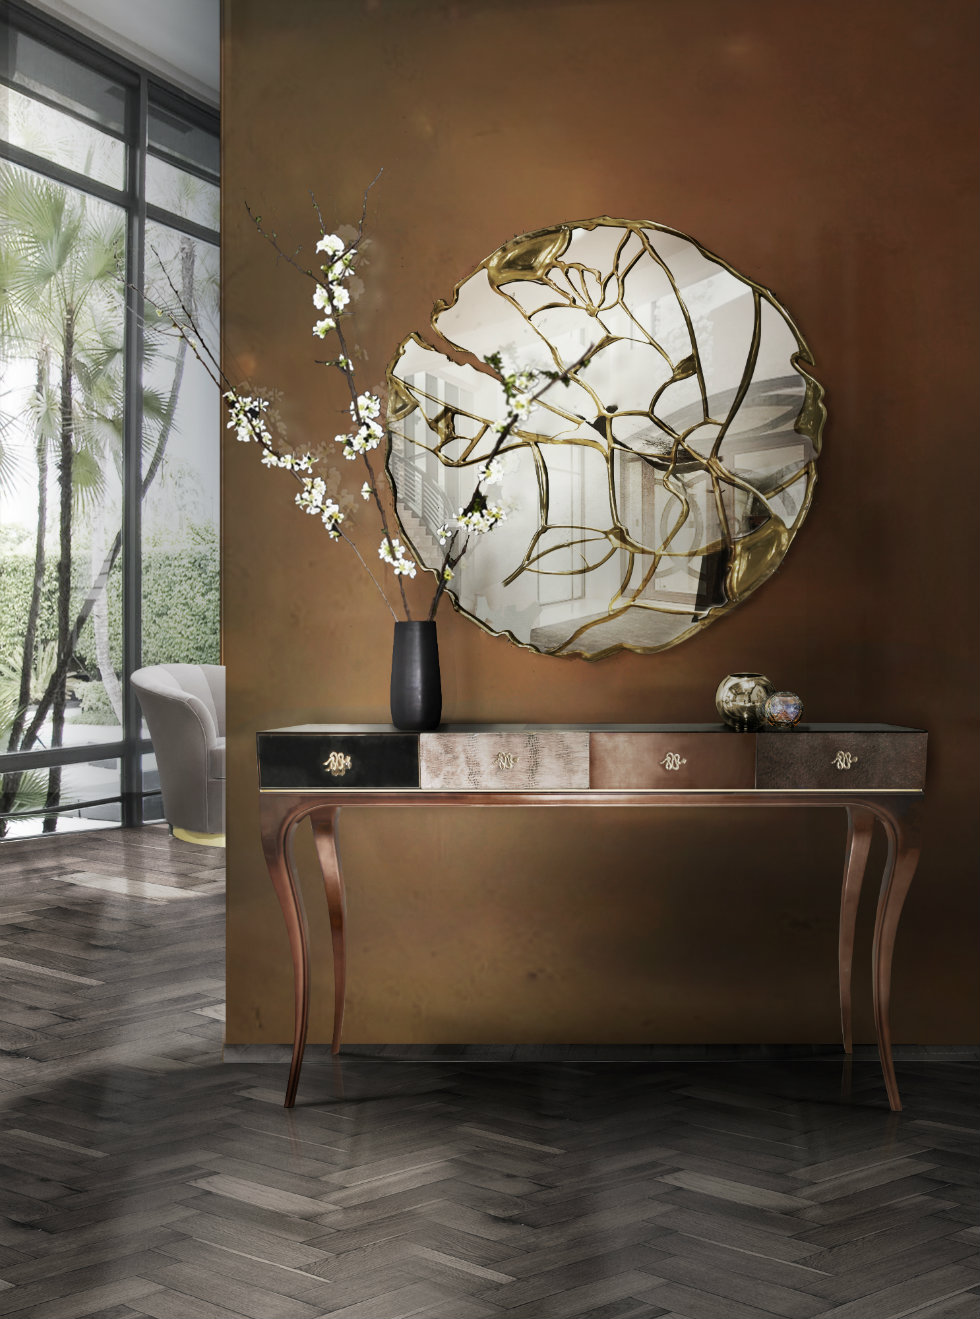 The Most Beautiful Wall Mirror Designs for Your Living Room  wall mirror designs The Most Beautiful Wall Mirror Designs for Your Living Room The Most Beautiful Wall Mirror Designs for Your Living Room6